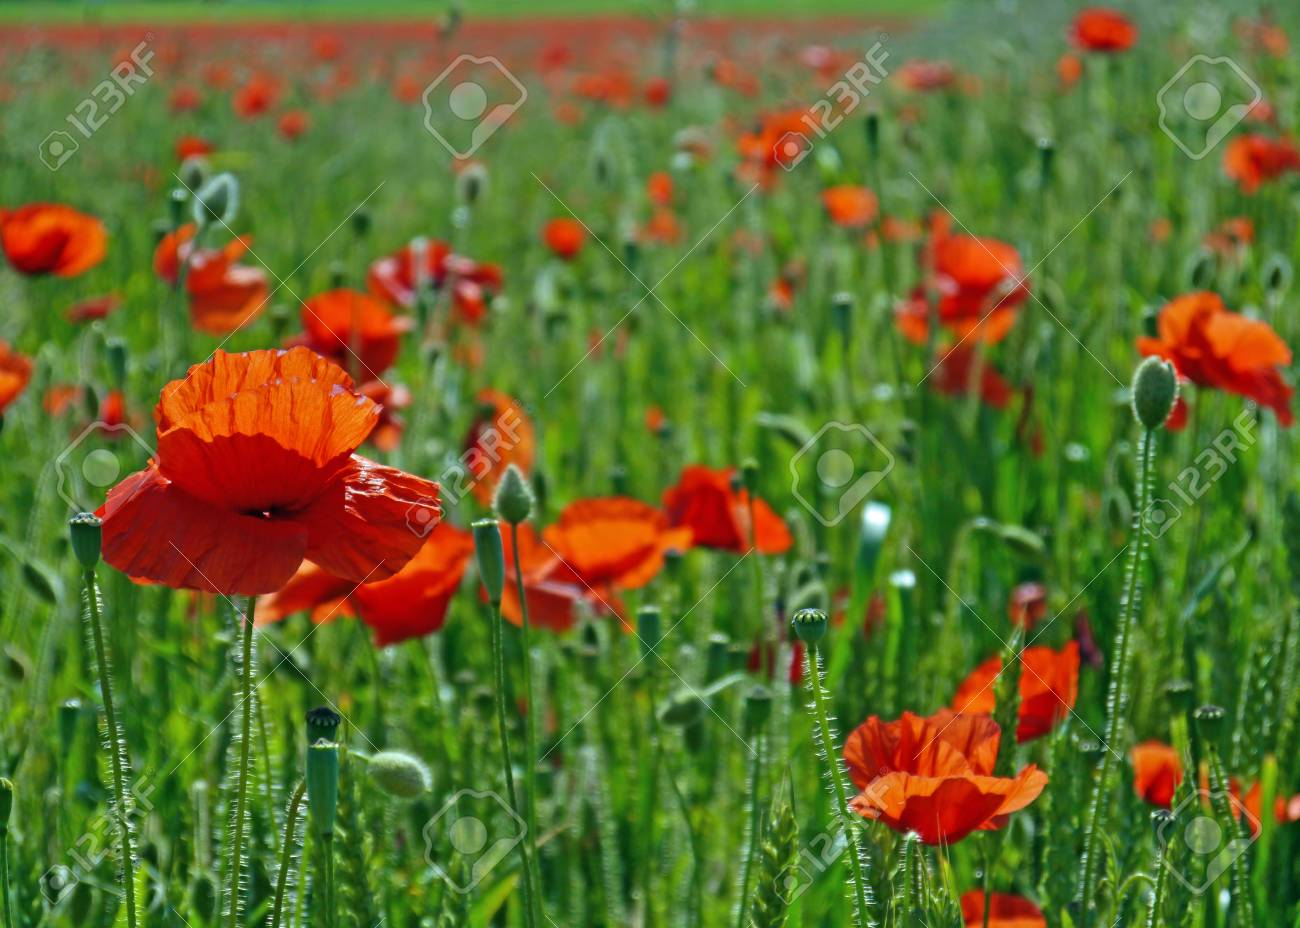 A meadow full of poppies and grasses in rural English countryside Standard-Bild - 81777948